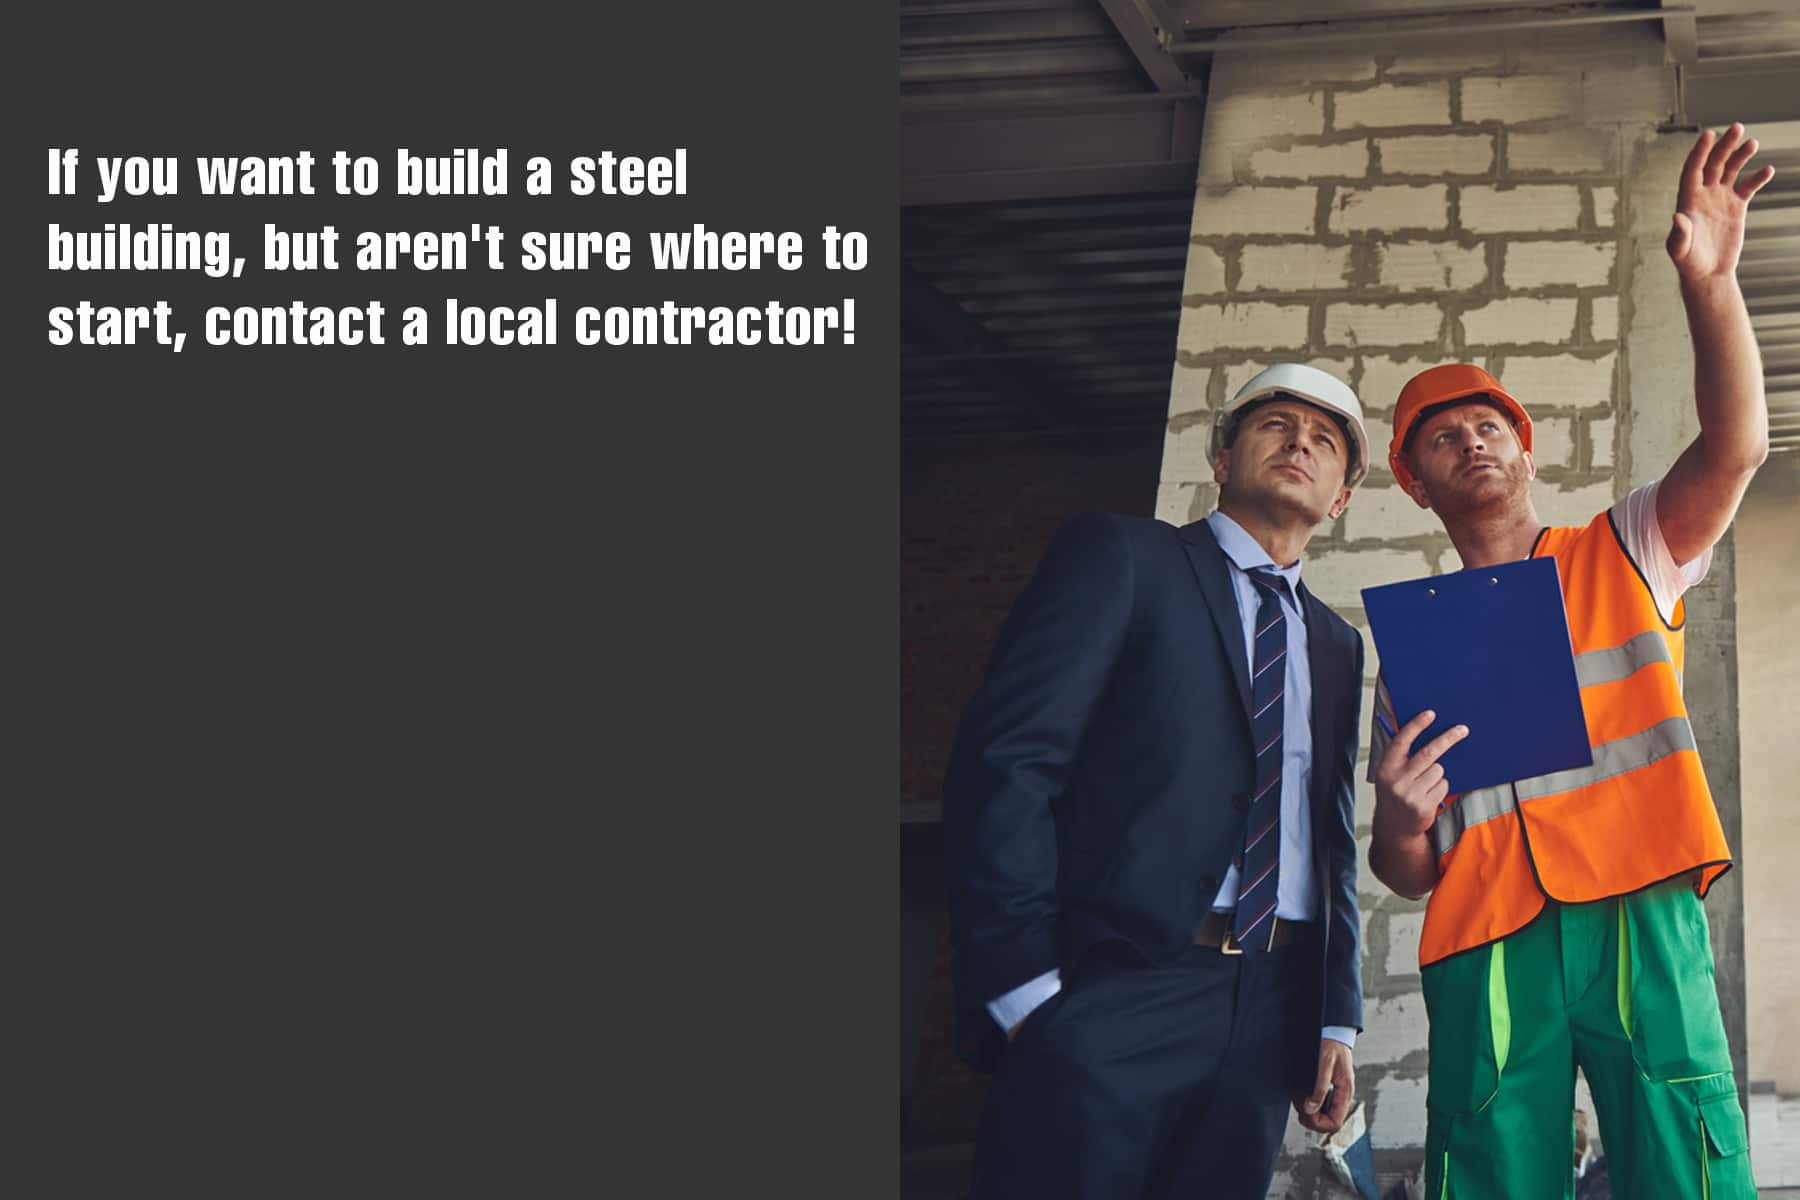 start by contacting a local contractor when building a steel building